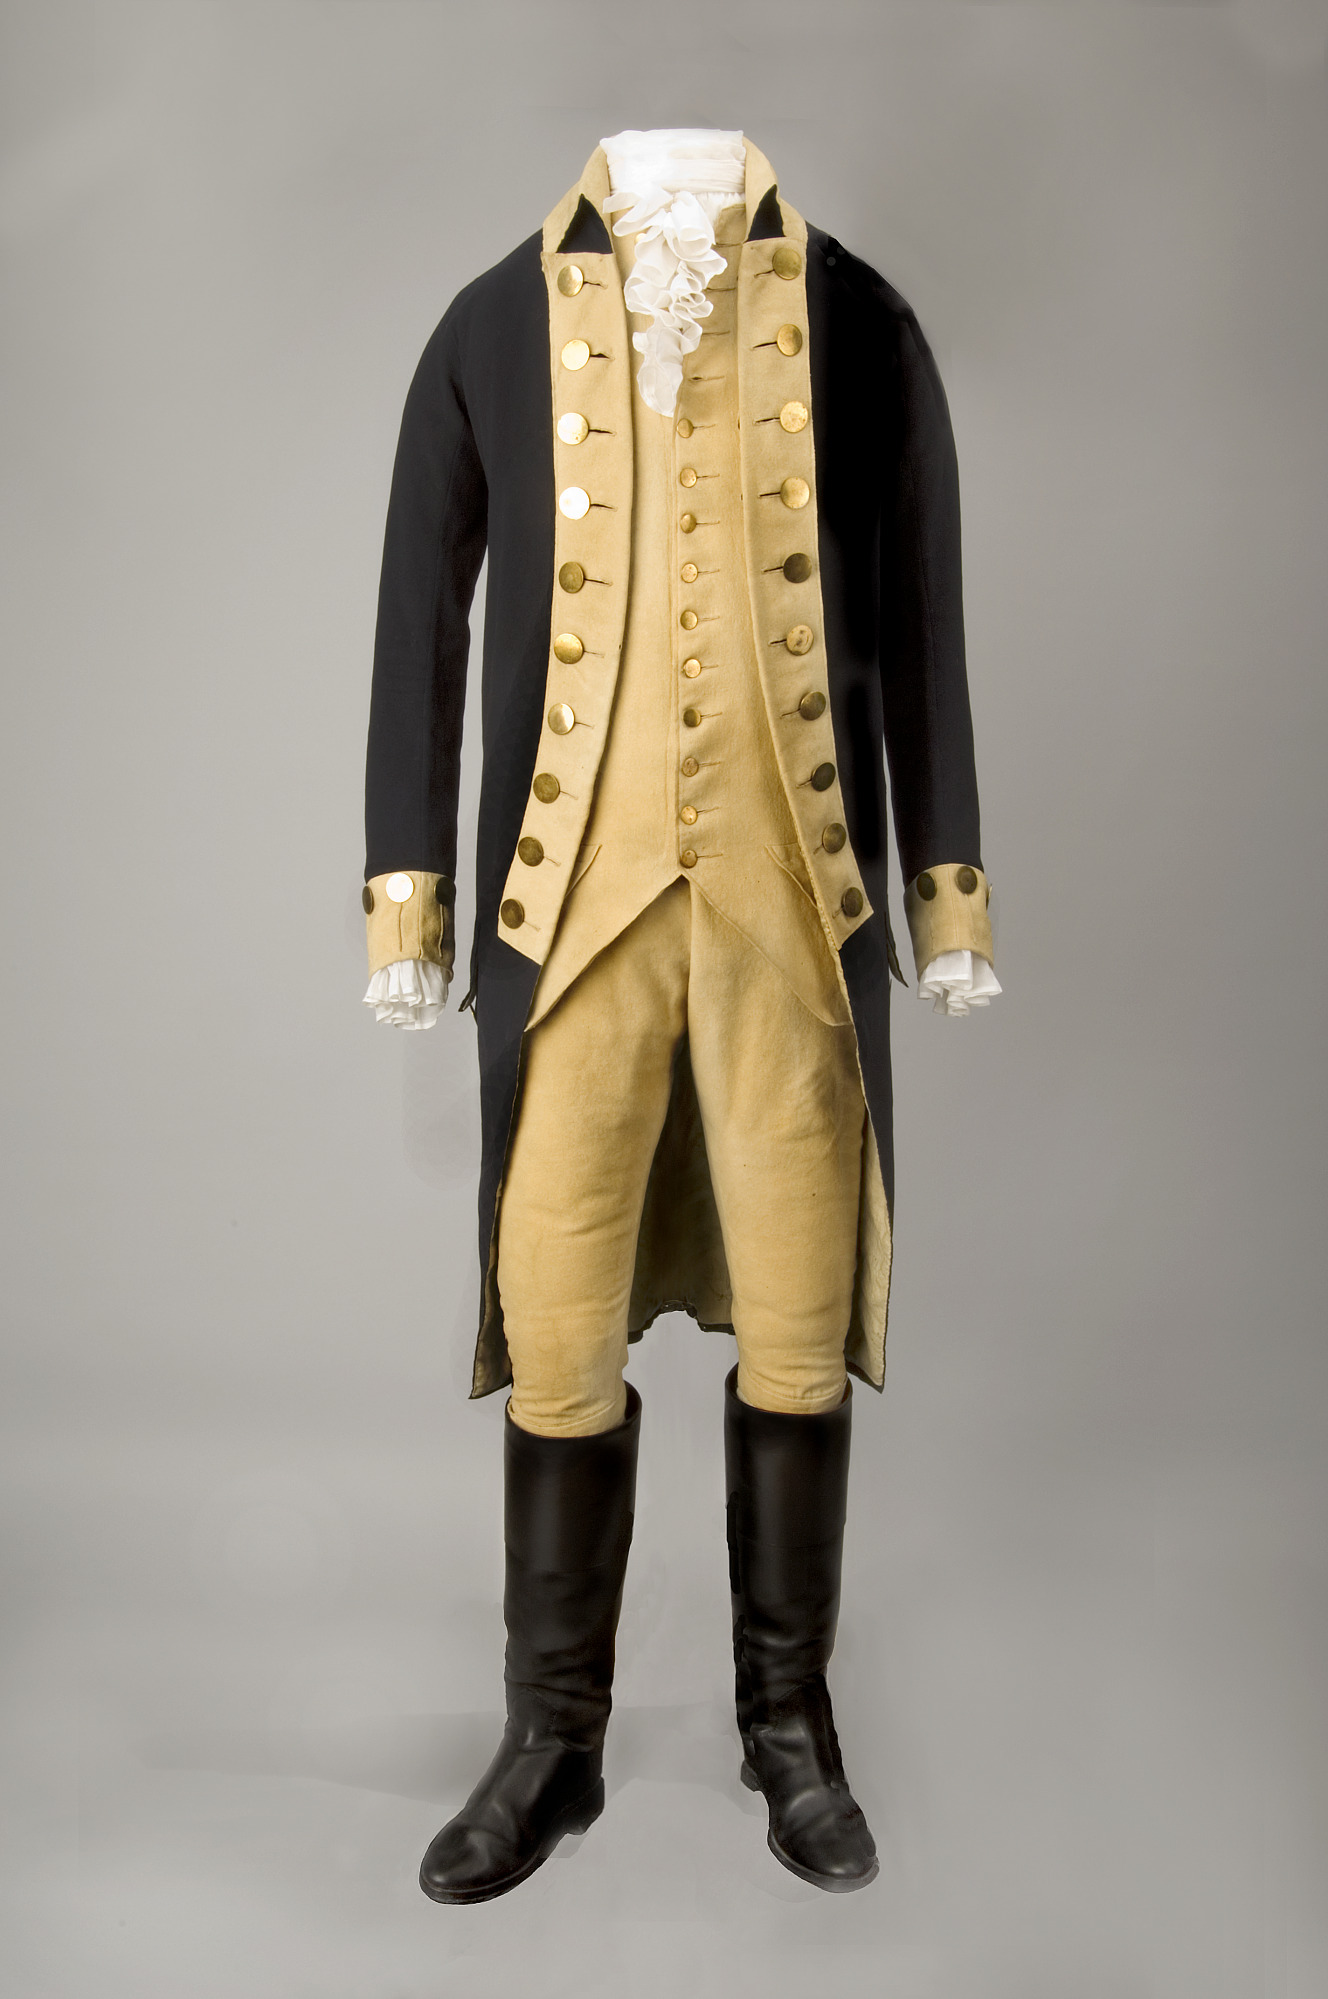 images for George Washington's Uniform